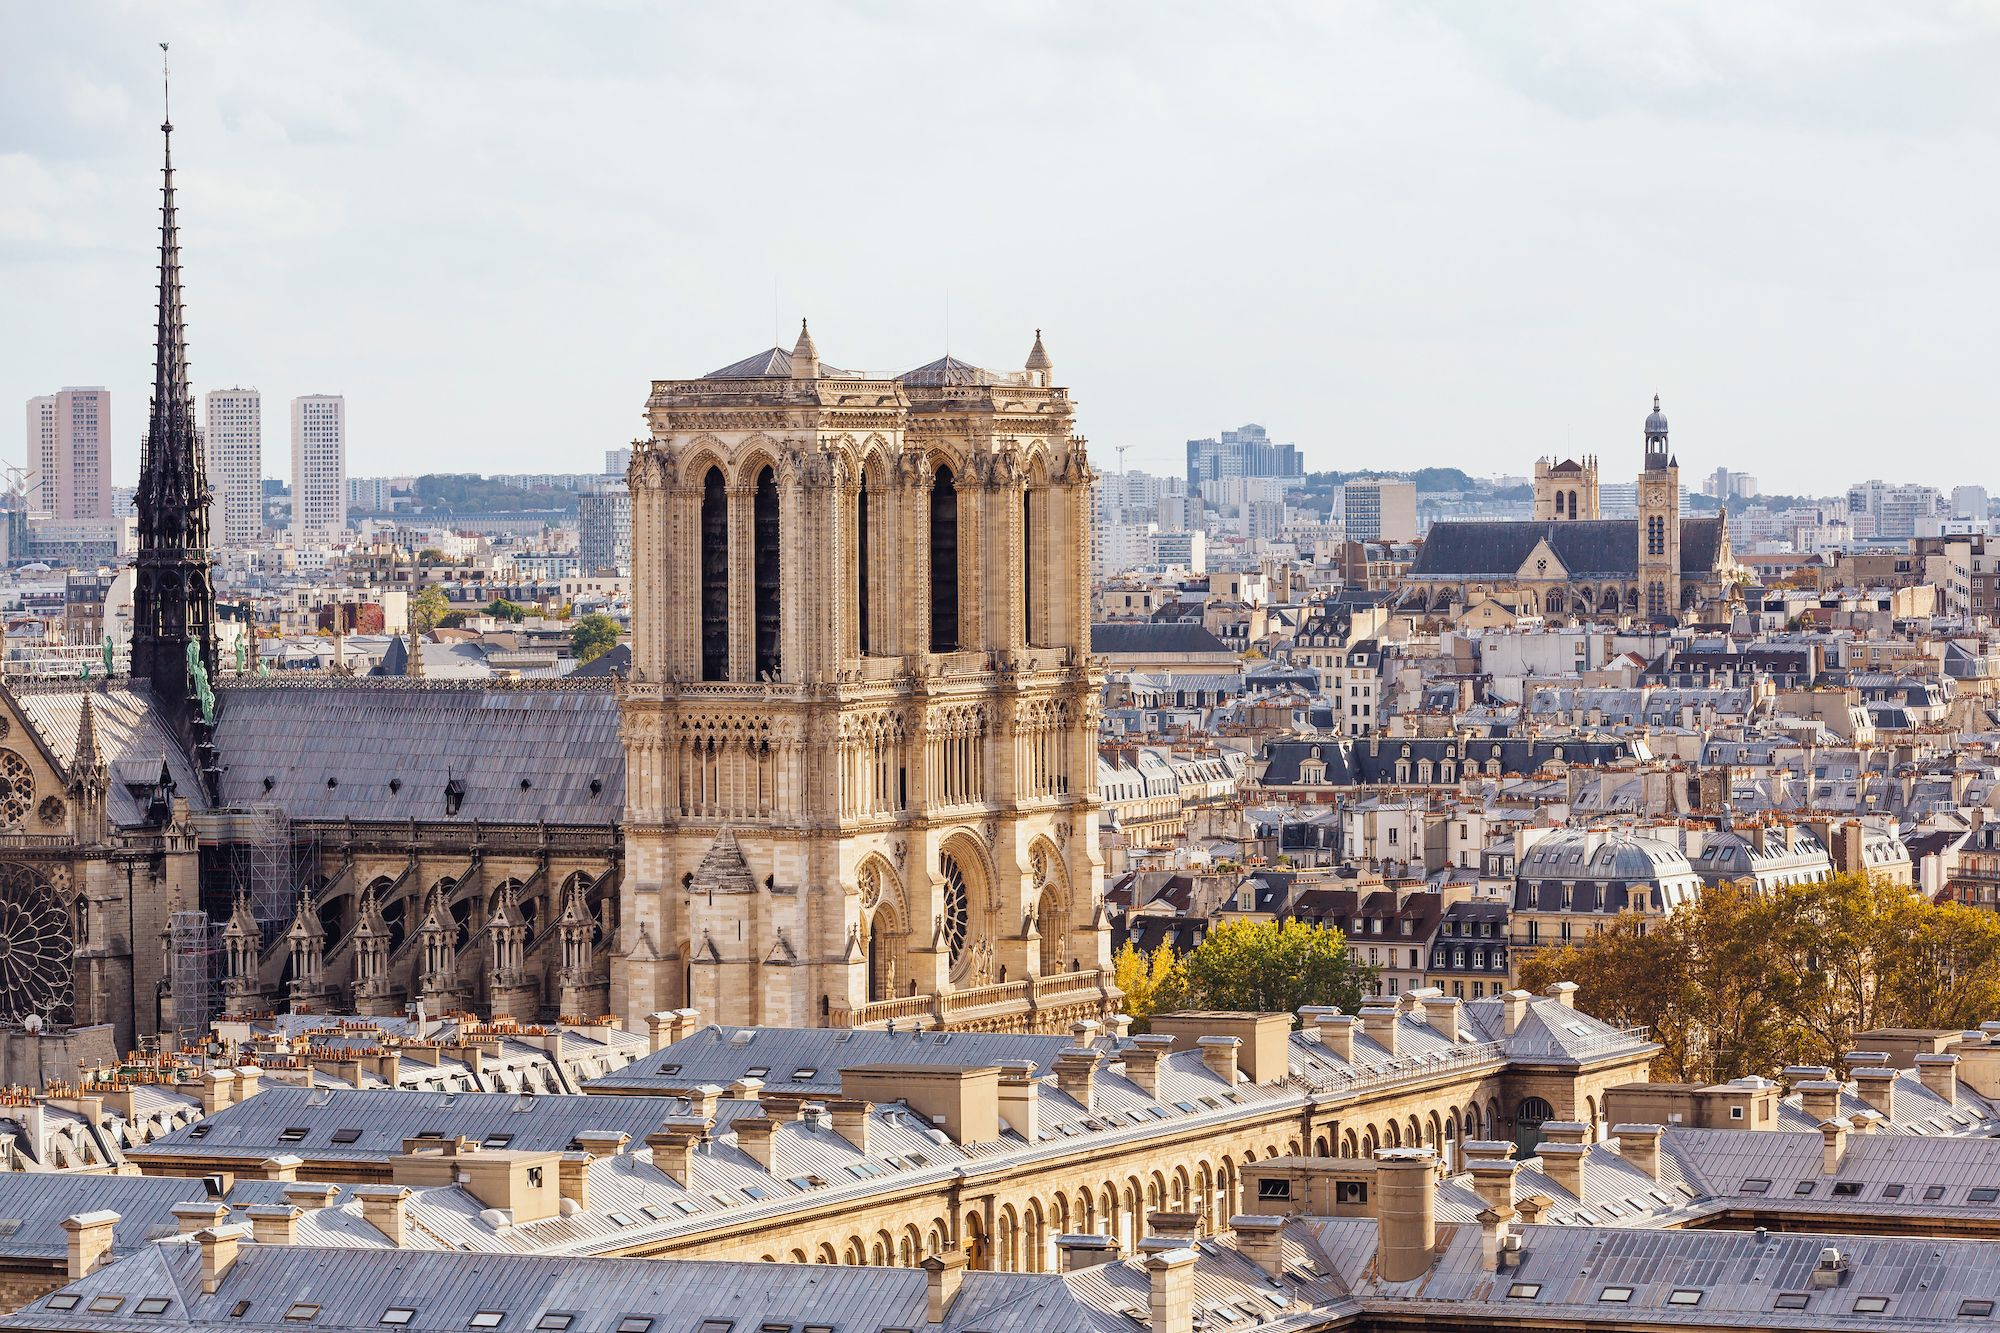 Notre Dame Cathedral To Be Re-Built Exactly As It Was Before The Fires